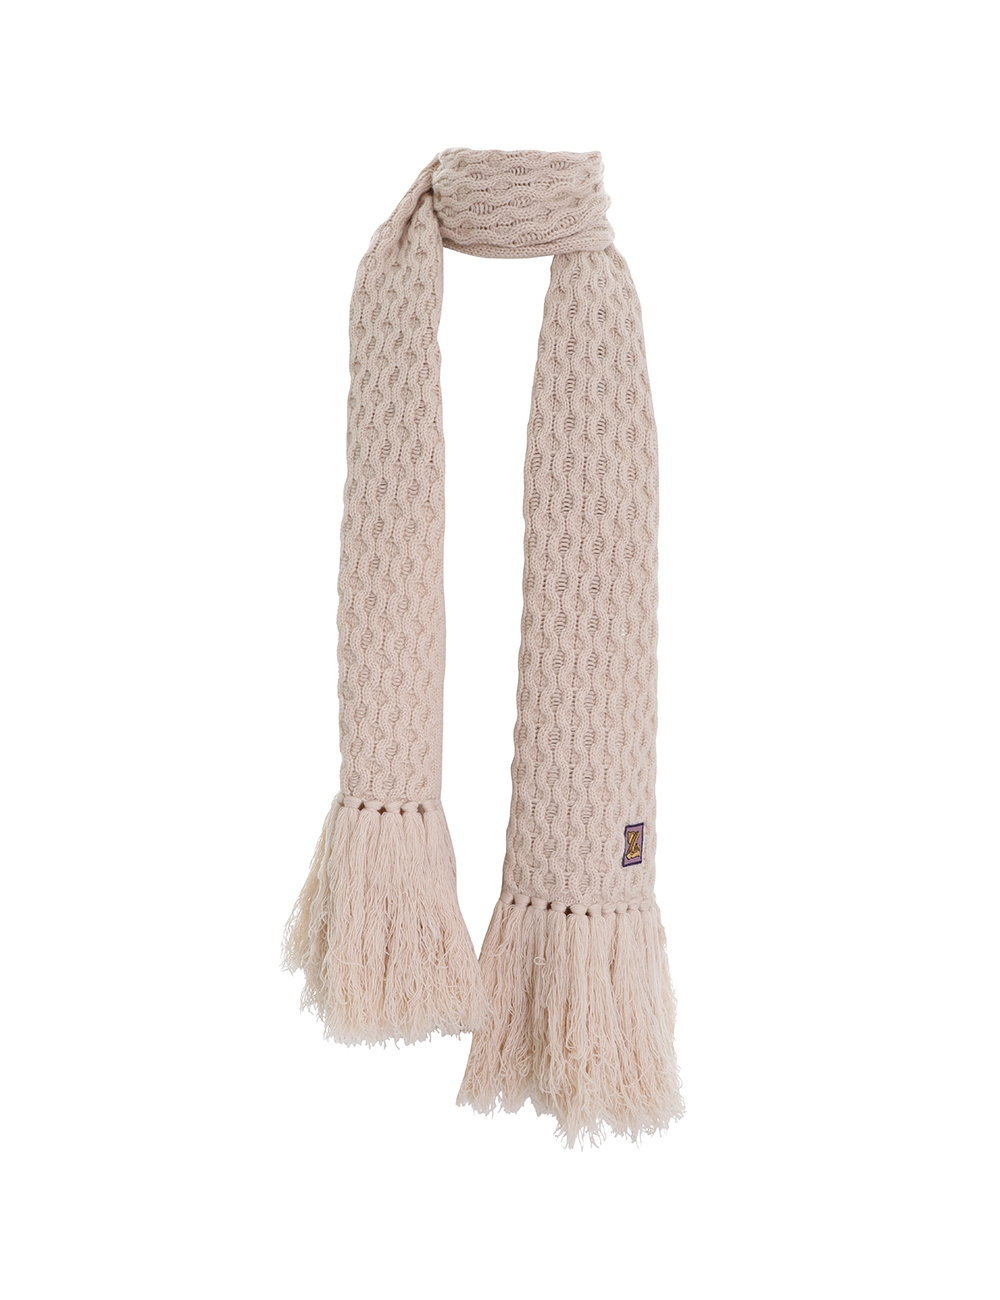 Concert Cable Scarf